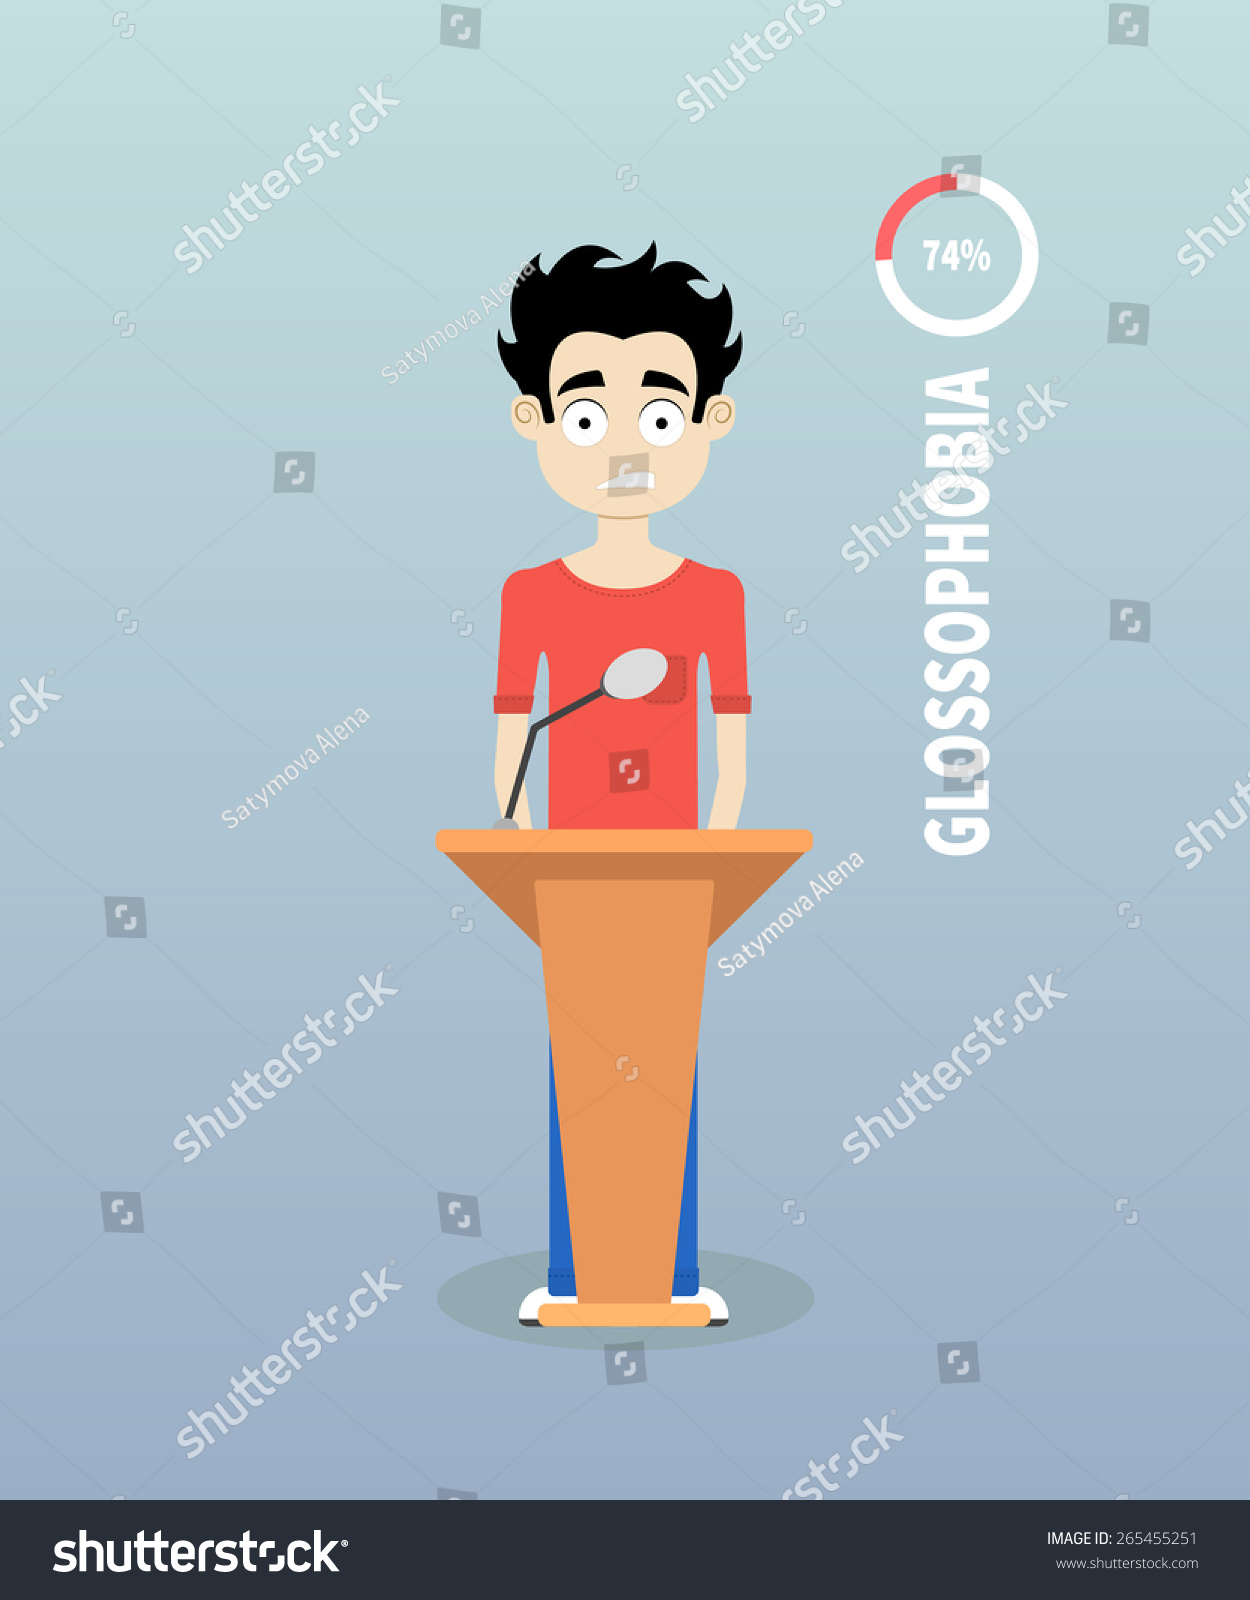 glossophobia essay Glossophobia is considered to be the fear of speech some people say they would rather die than speak in public in fact glossophobia, of fear of speaking, has surpassed even dying in some surveys.